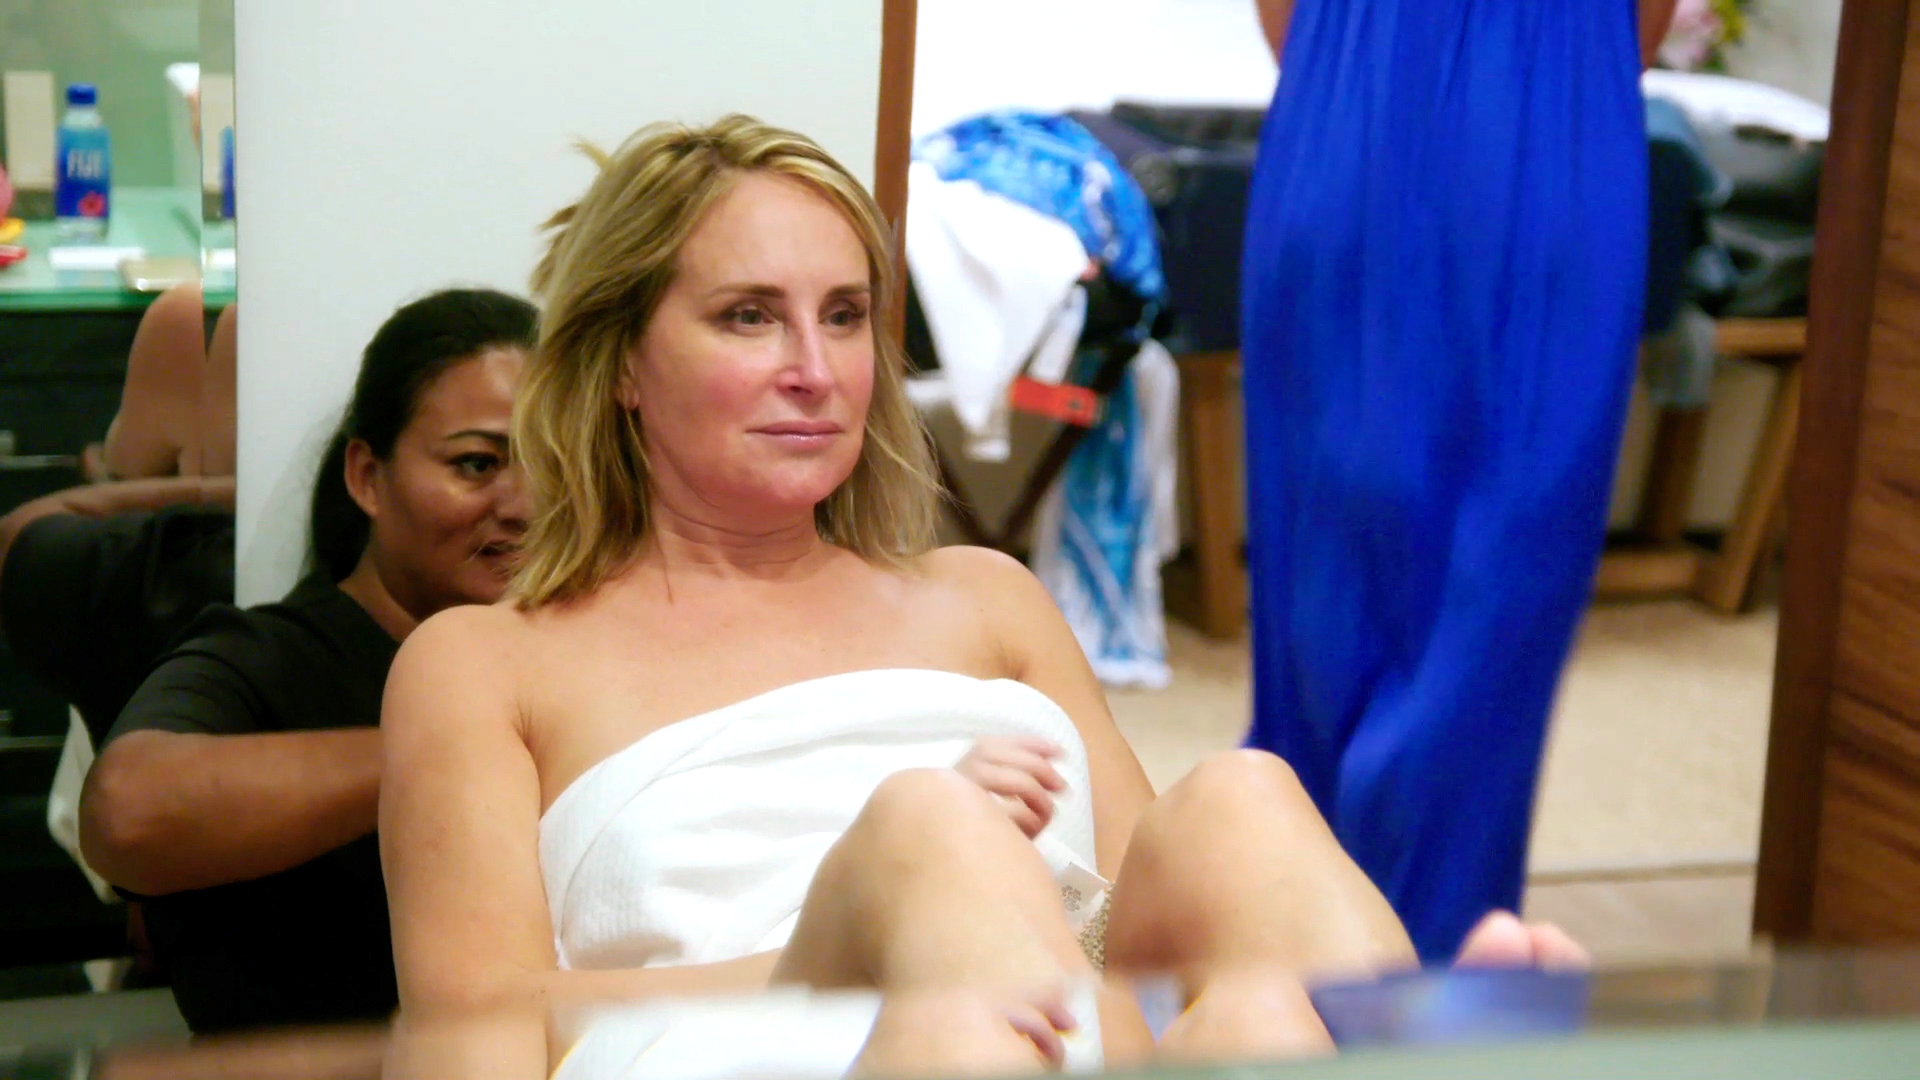 What Is Sonja Morgan Drinking?